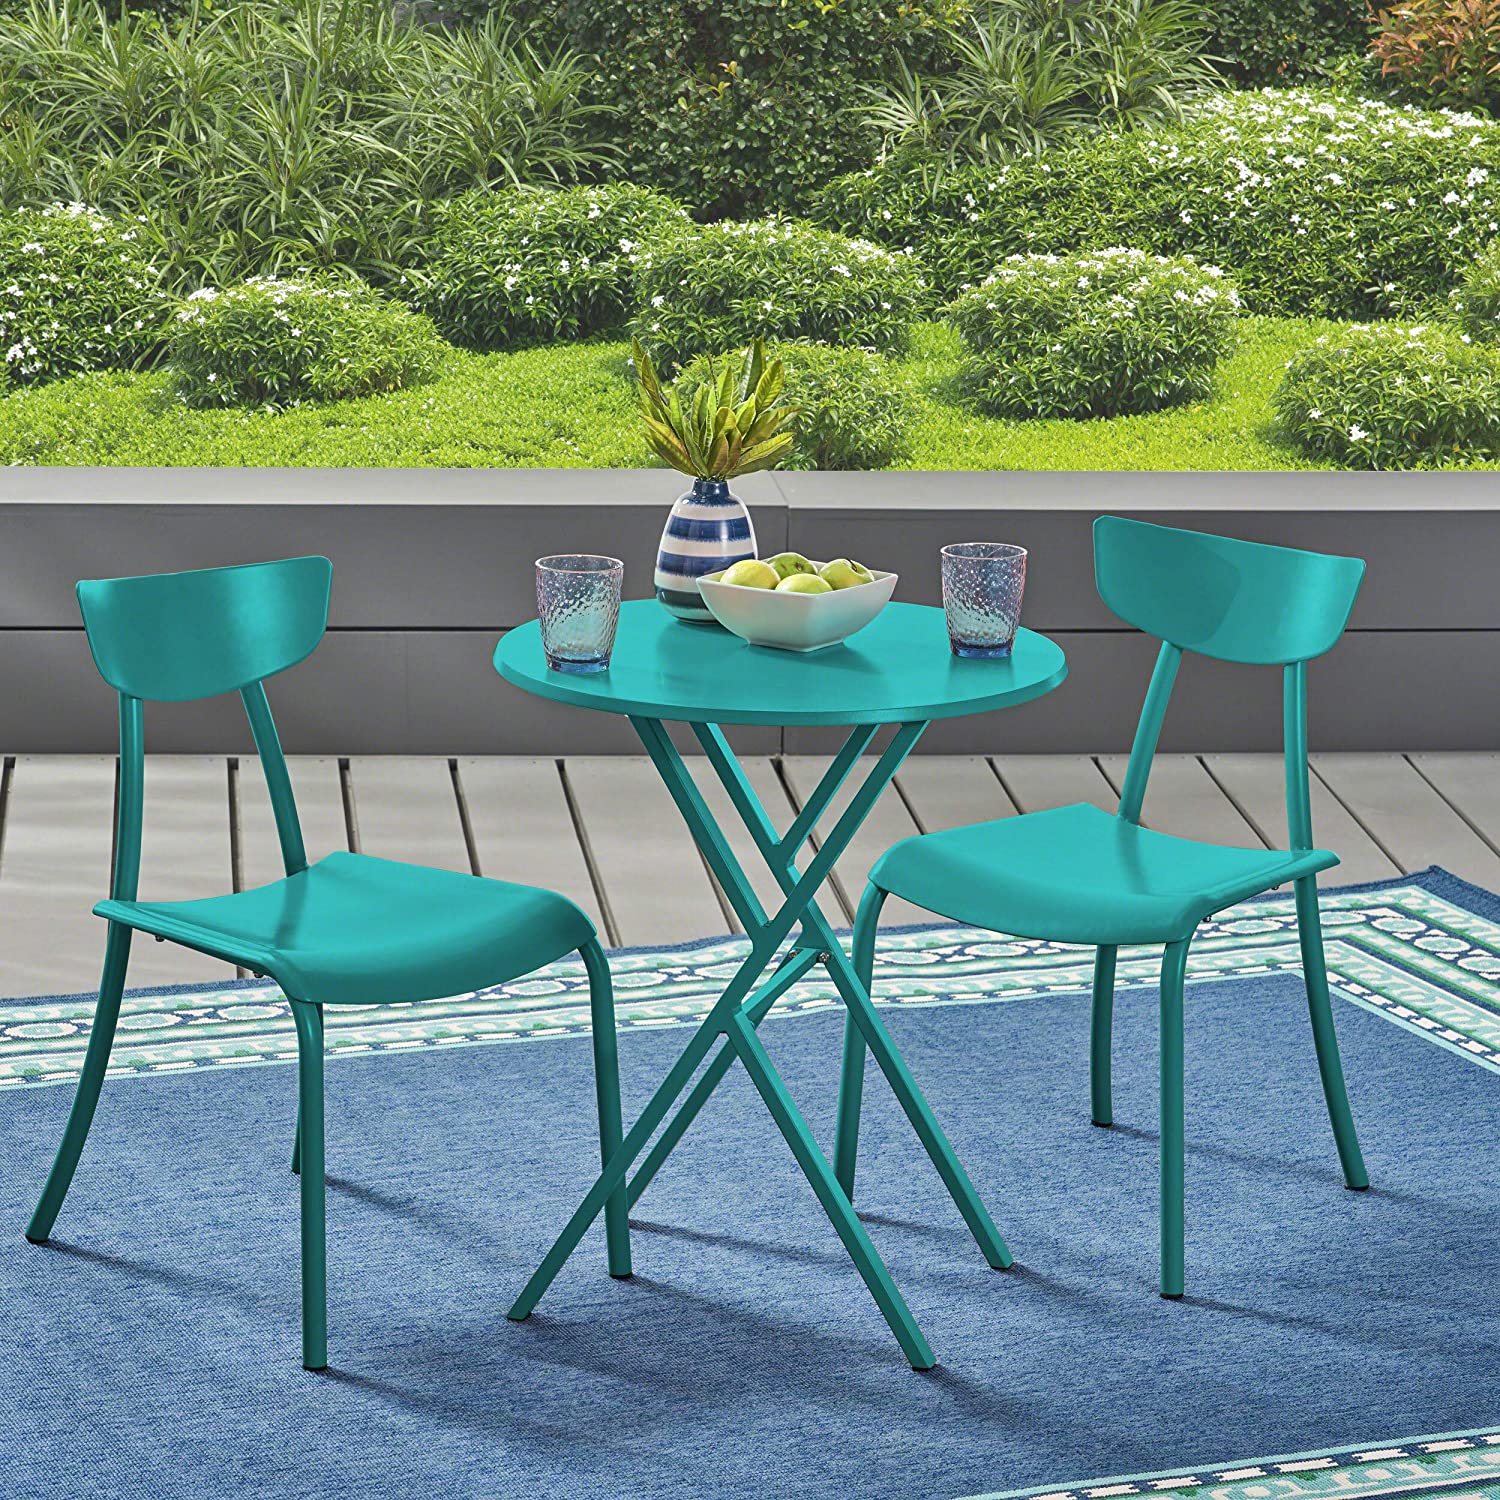 Christopher Knight Home 304939 Lucy Outdoor Bistro Set, Matte Teal